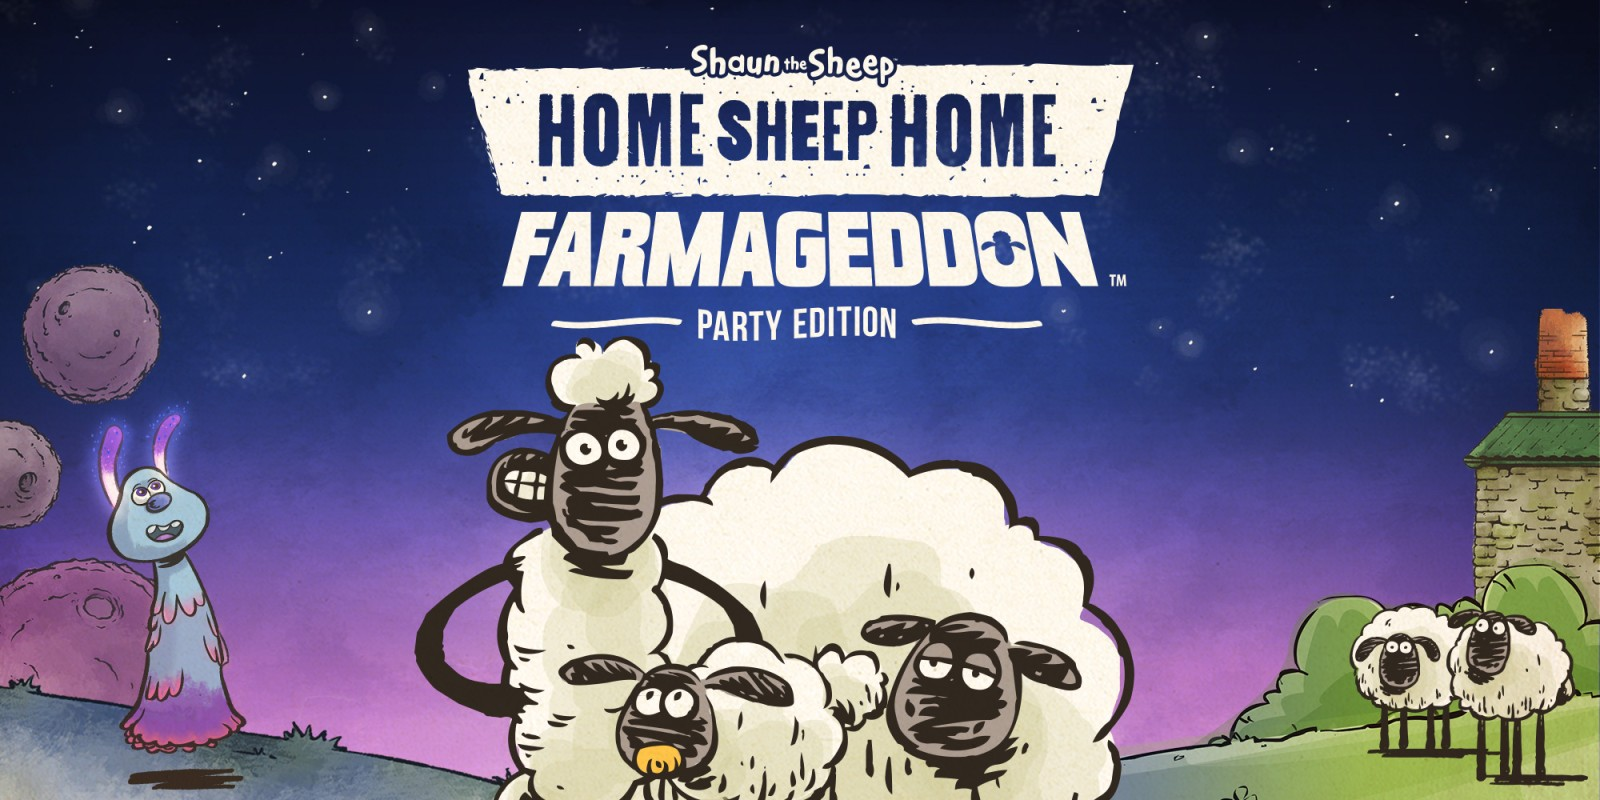 Home Sheep Home: Farmageddon Party Edition